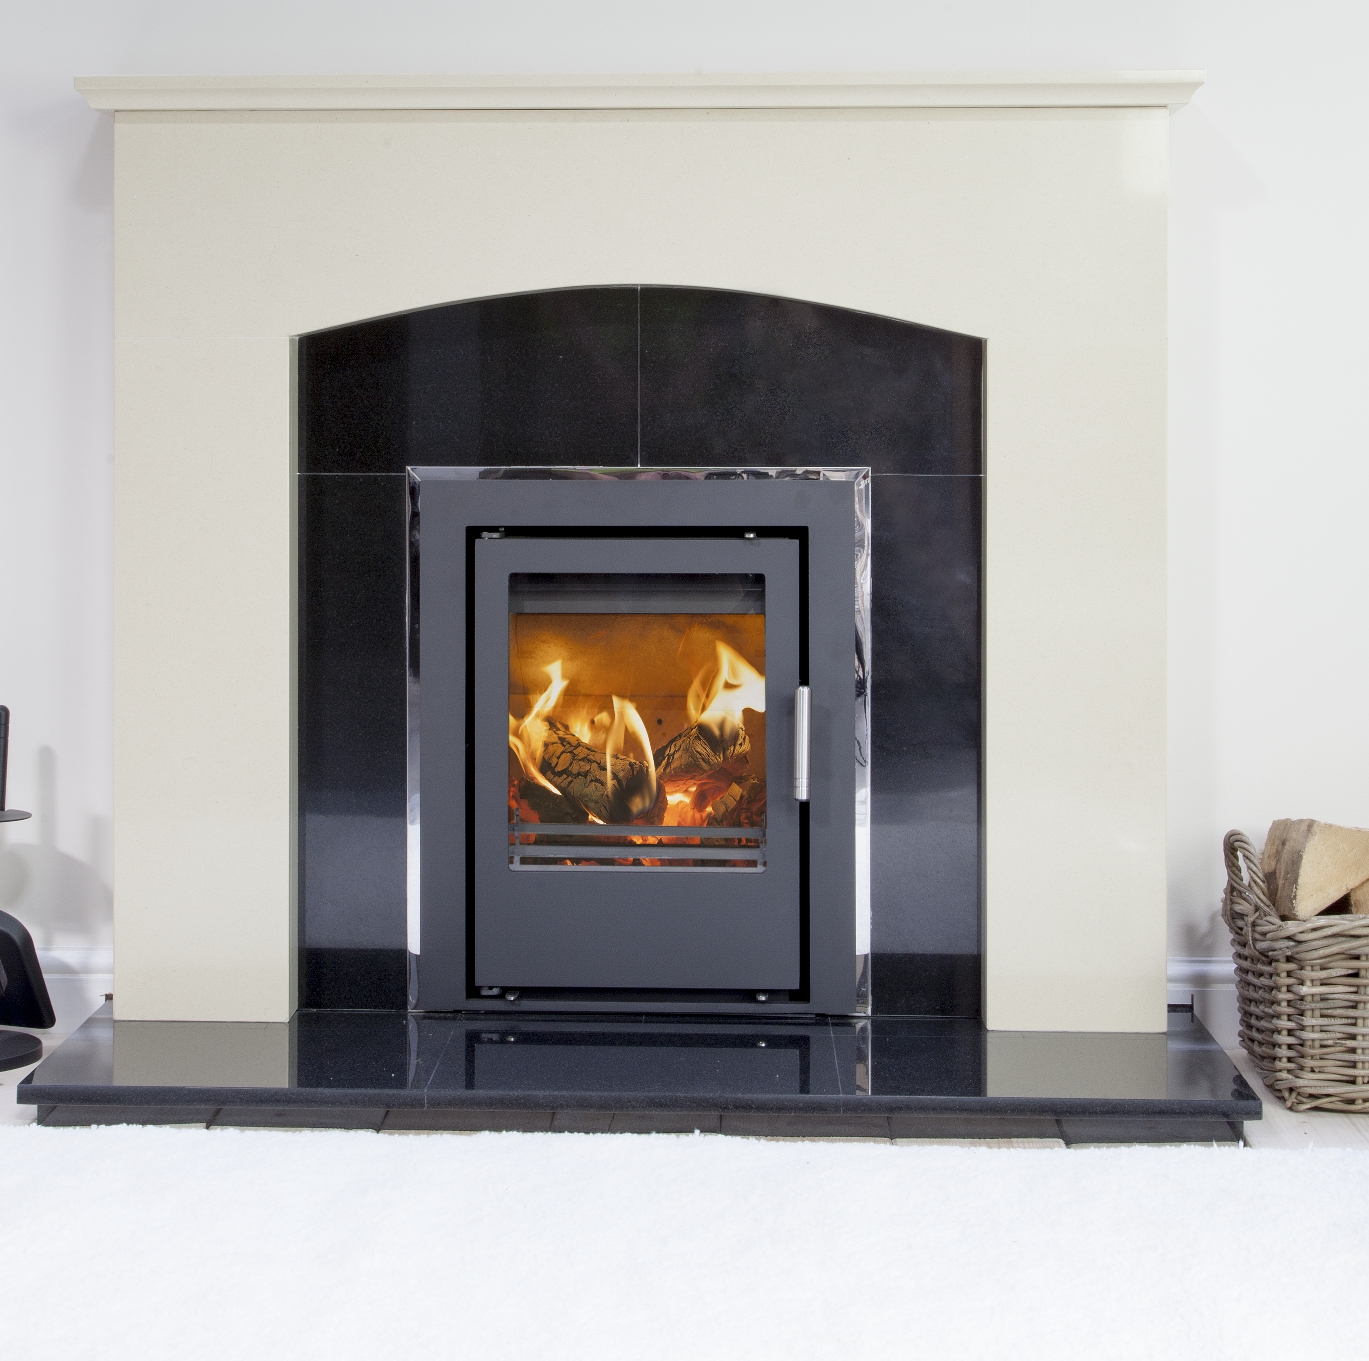 Refurbished Fireplaces Belfast Fireplaces